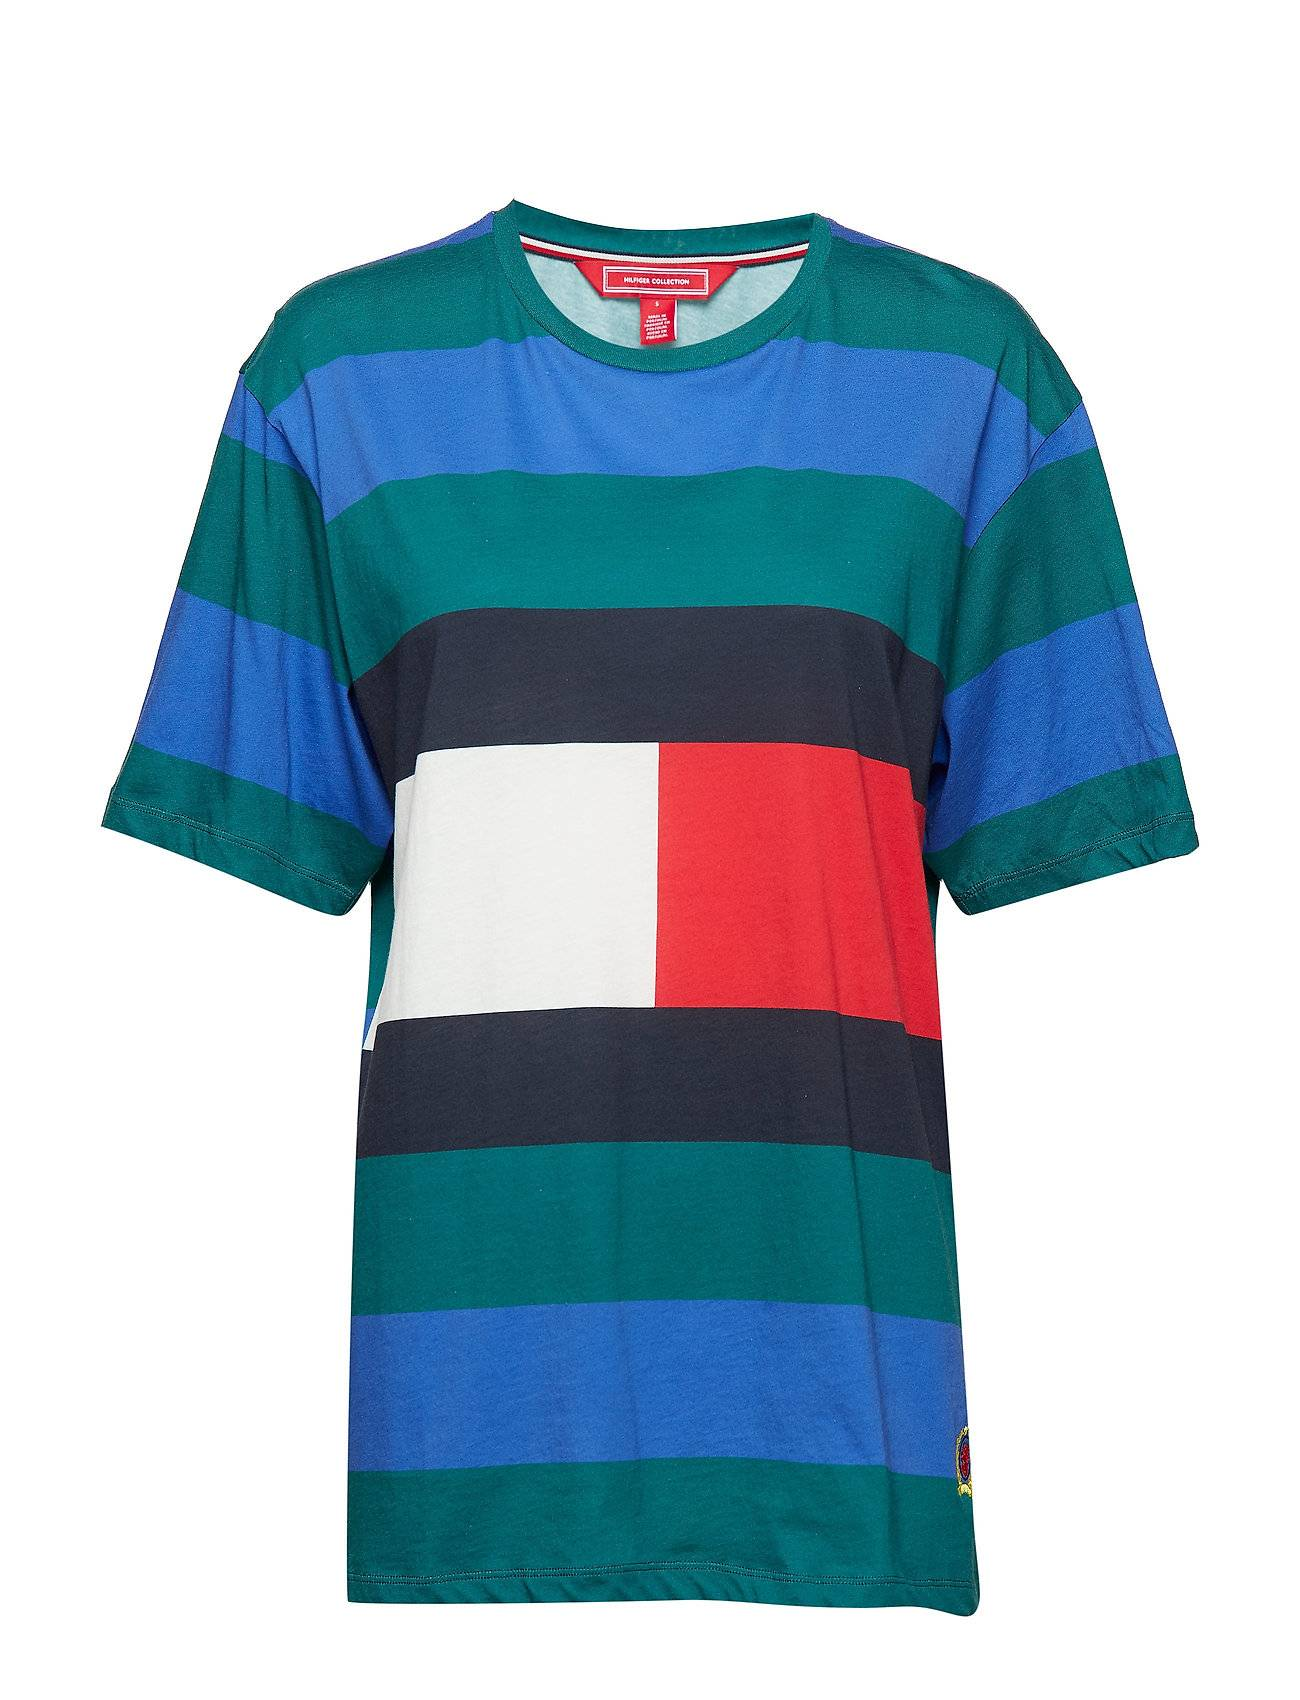 Hilfiger Collection Rugby Stp T-Shirt Ss